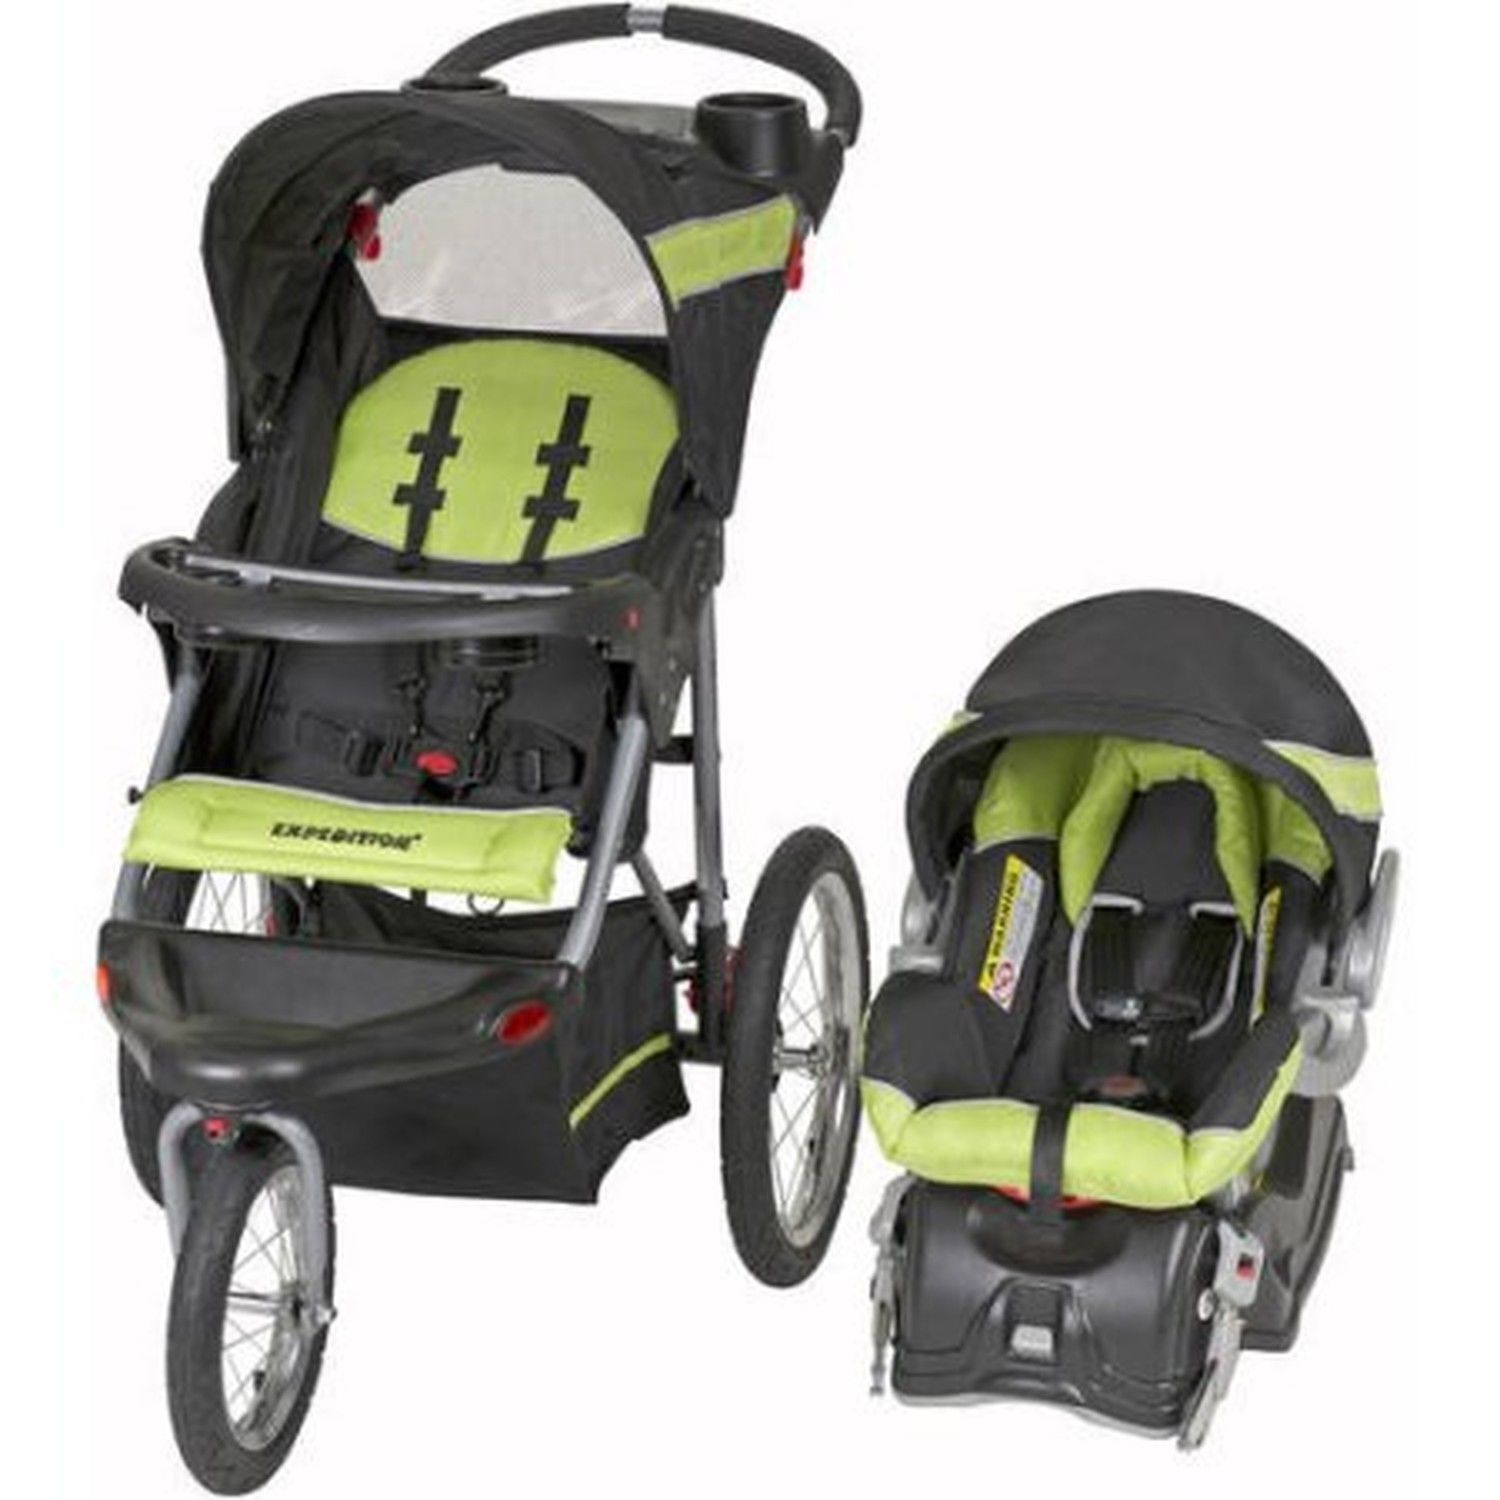 Купить Baby Trend TJ94312 - Baby Trend Expedition Jogger Travel System 3in1 Stroller Car Seat Electric Lime